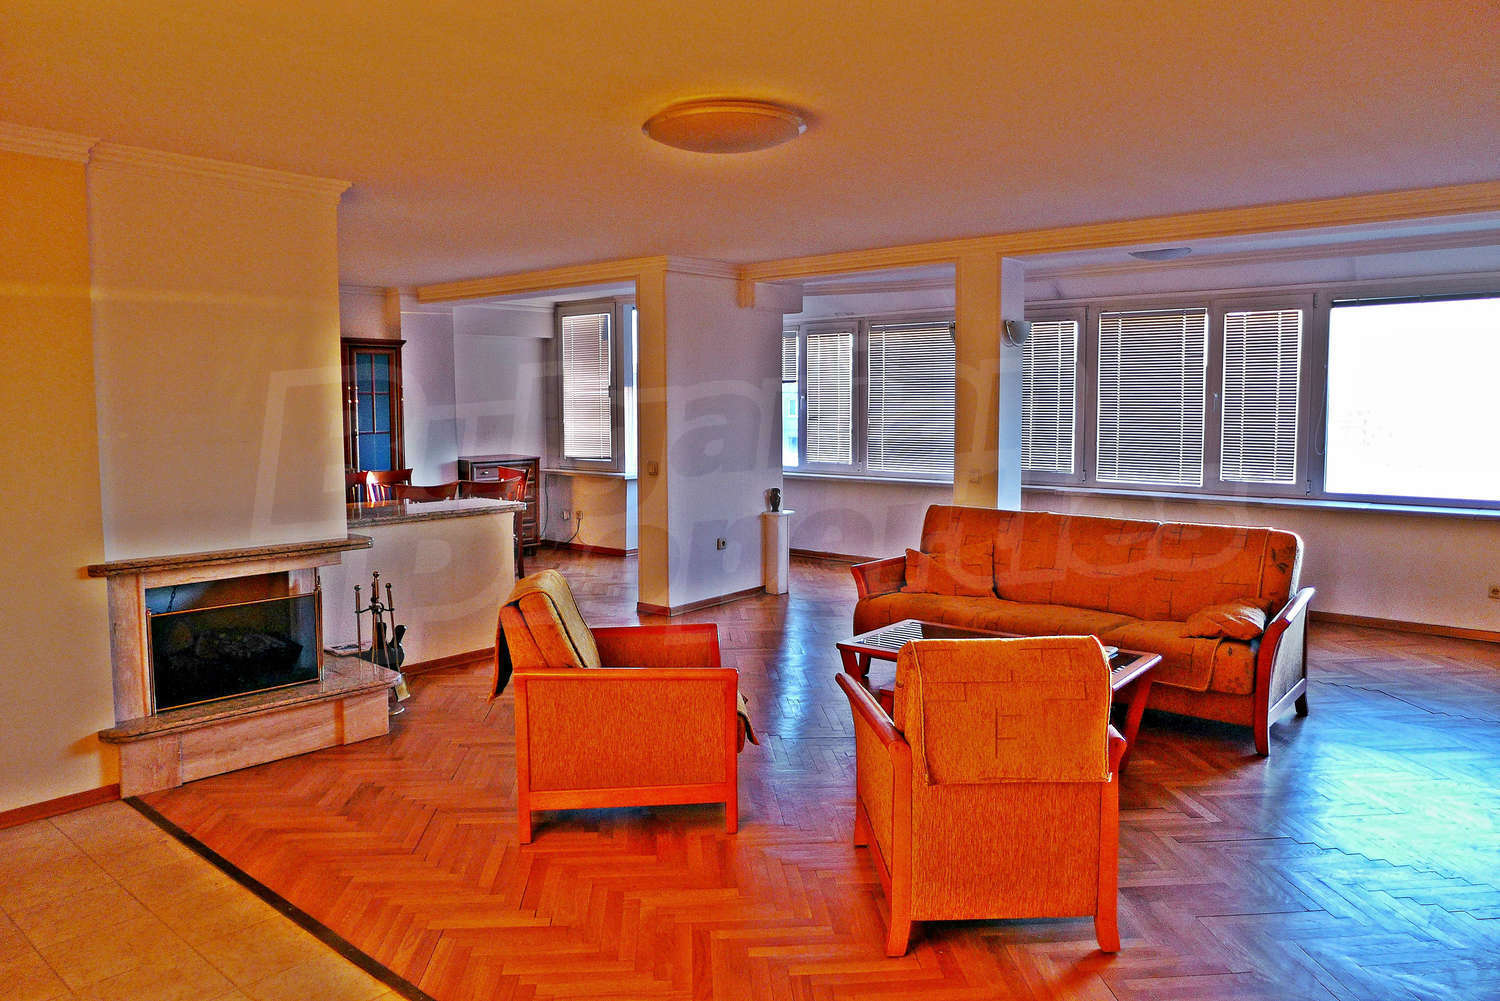 2 bedroom apartment for rent in sofia quarterpoduyane for Big garage for rent